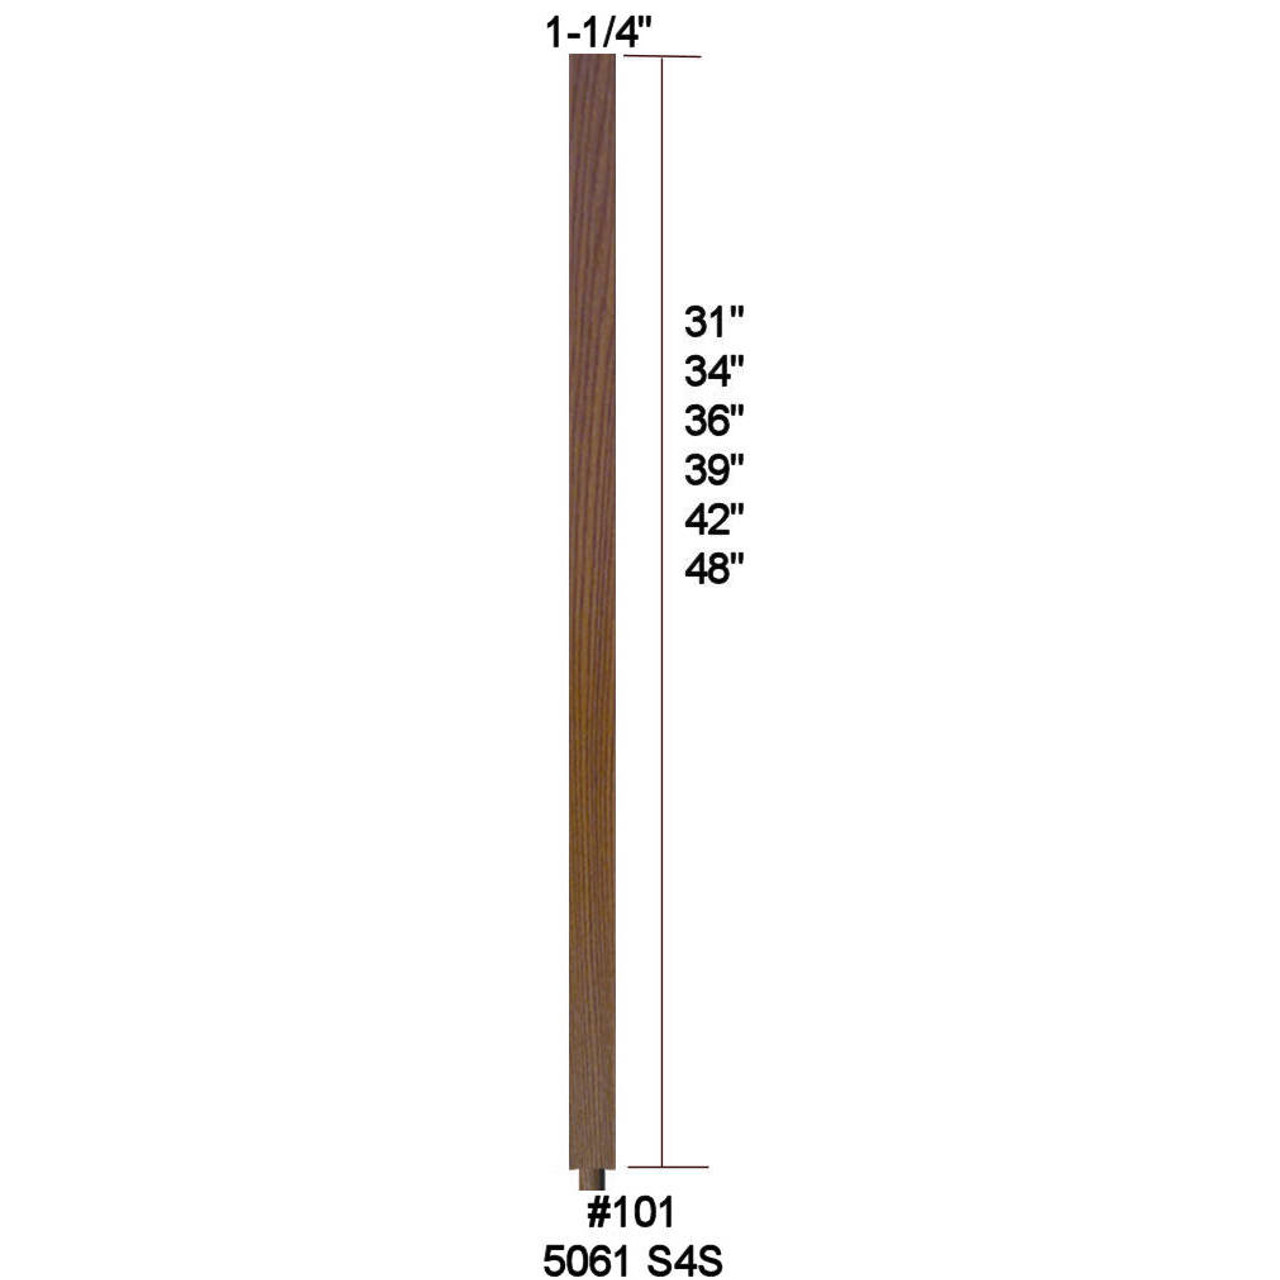 """5060 (101) 1-1/4"""" S4S 31"""" Baluster, with dowel pin shipped separate"""